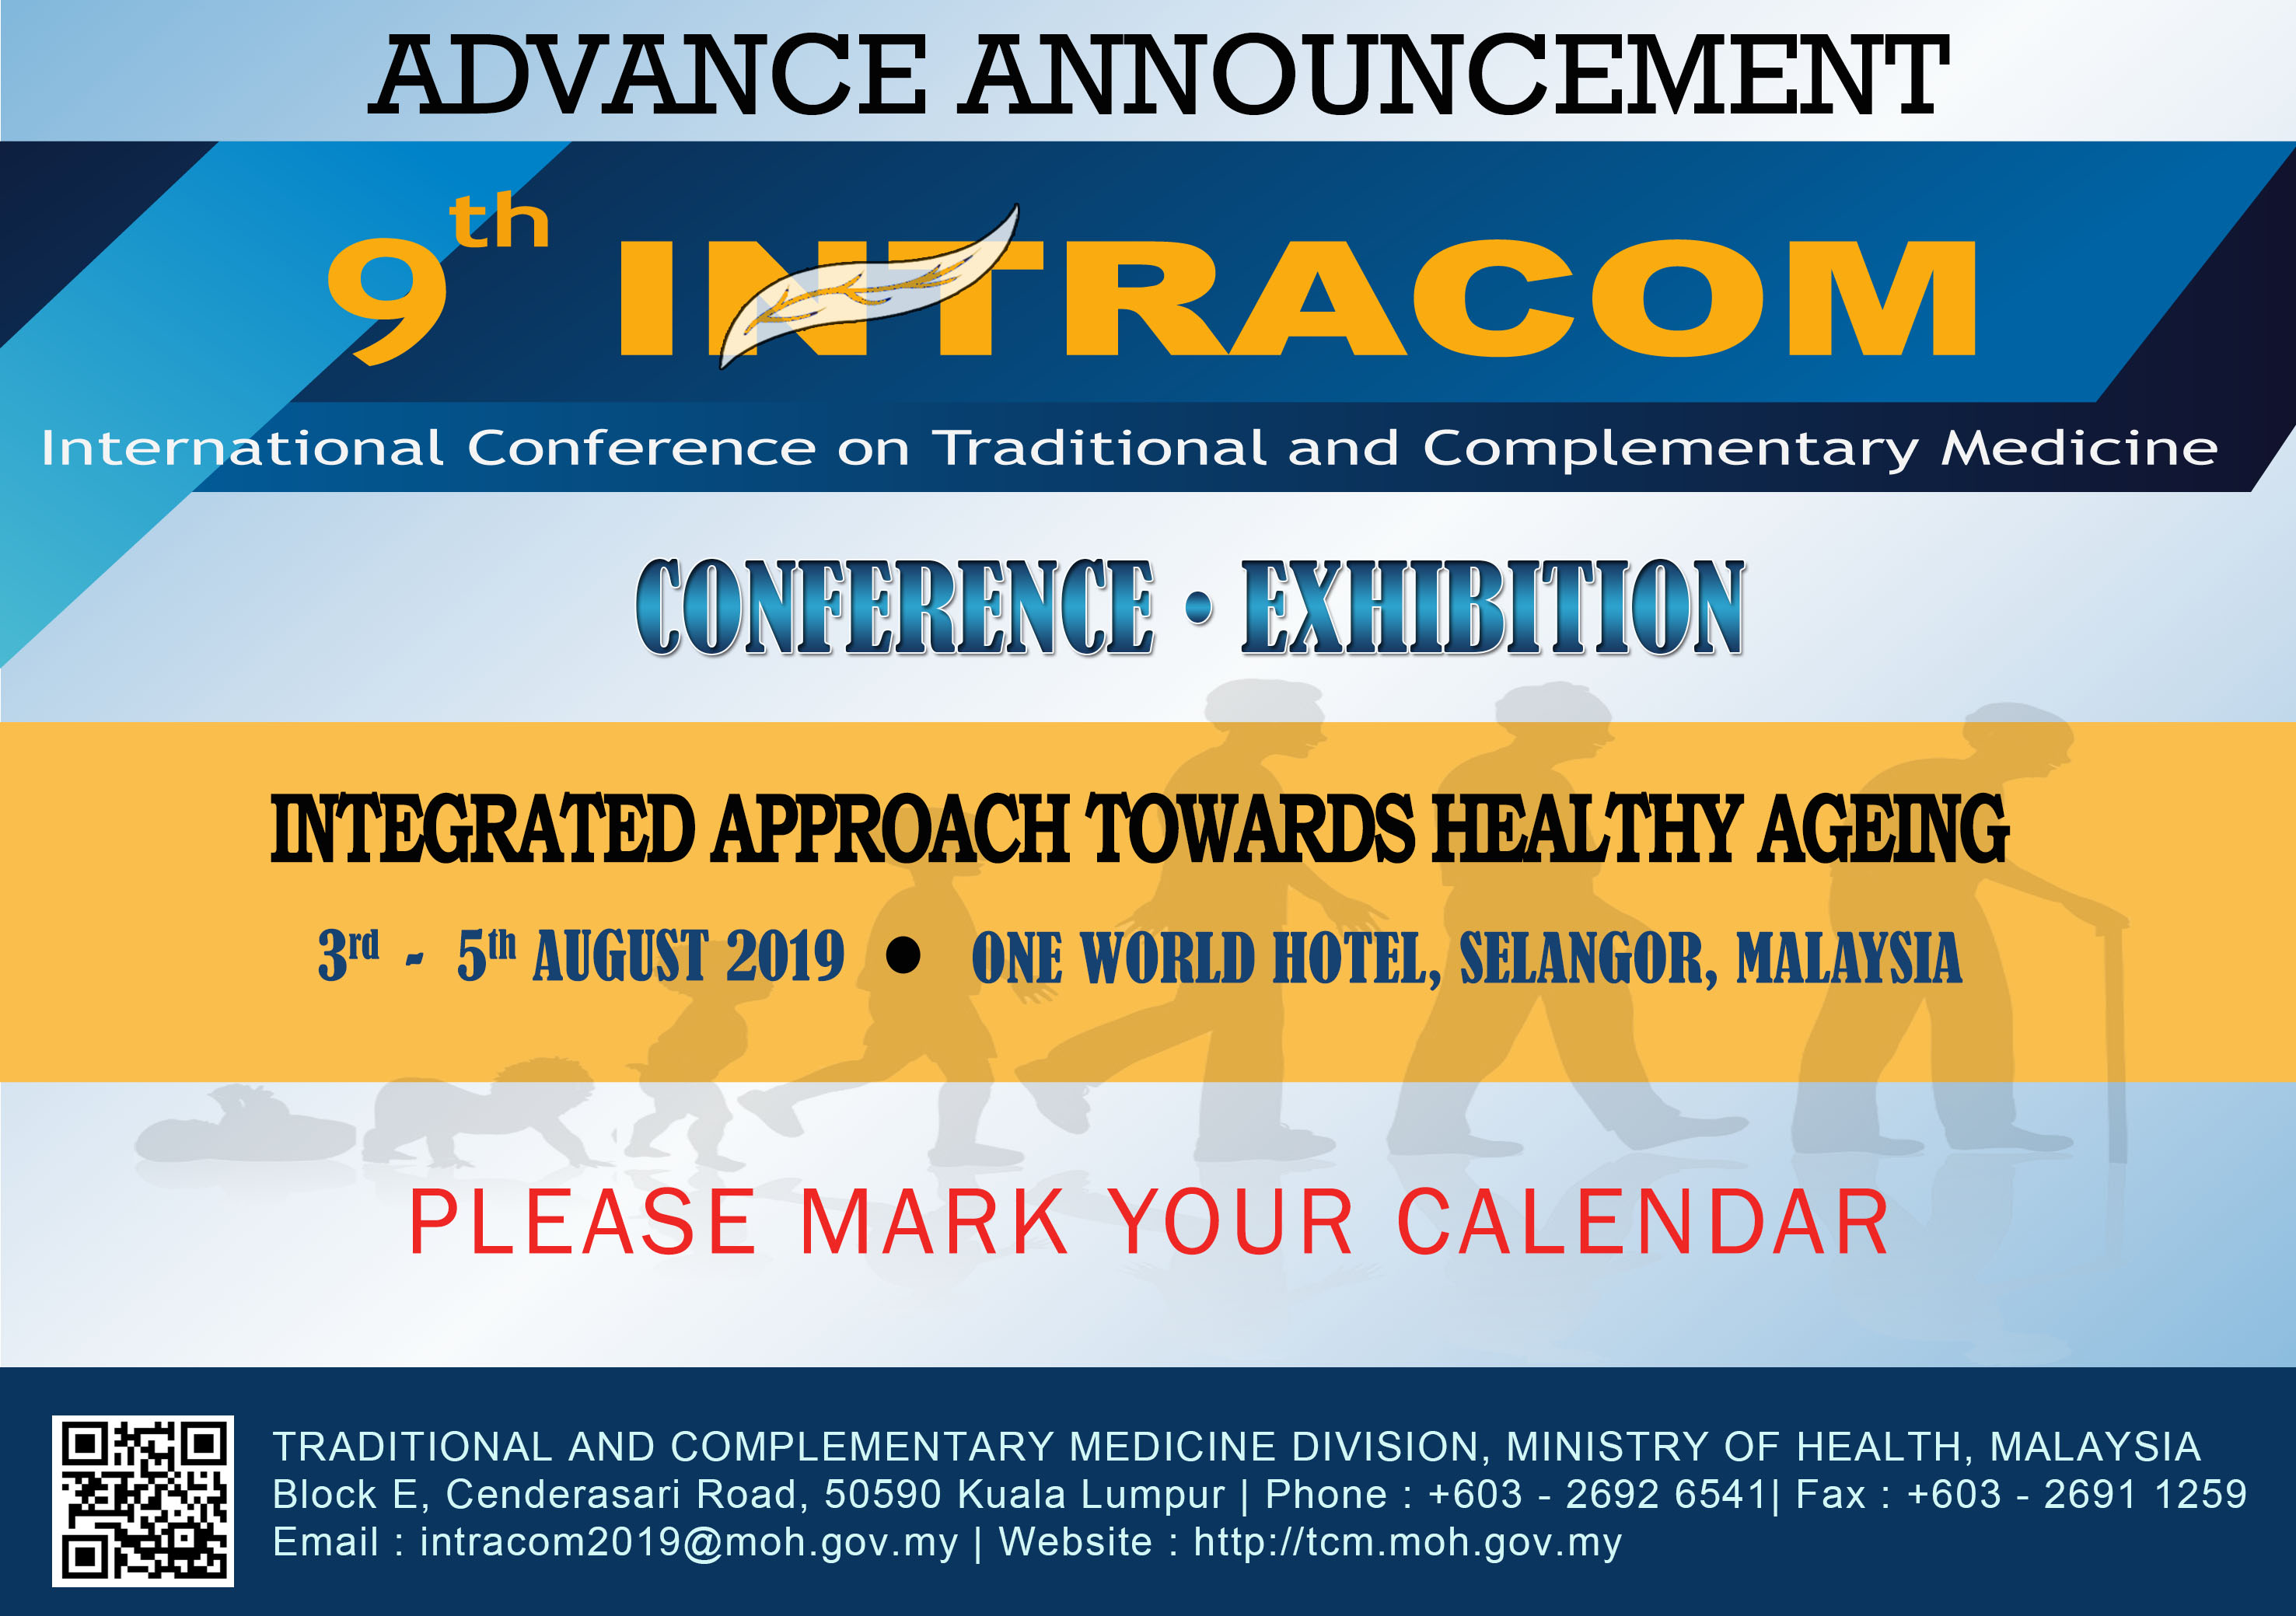 Advance Announcement For 9th Intracom 2019 Integrated Approach Towards Healthy Ageing